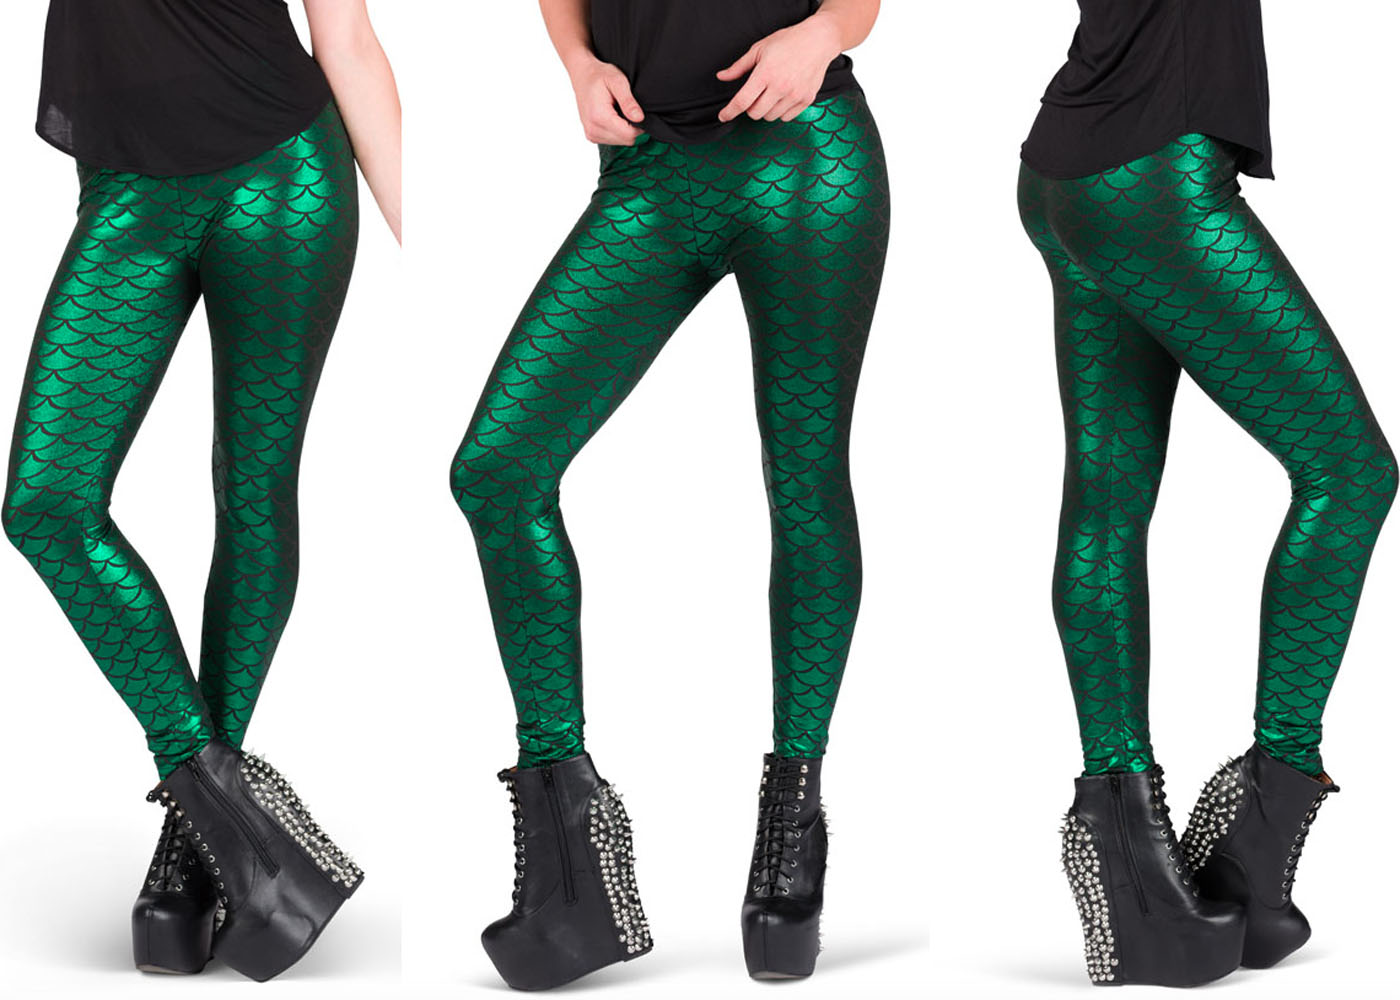 4ed98a7ec6ea79 Majestic Mermaid Leggings – Online Legging Store